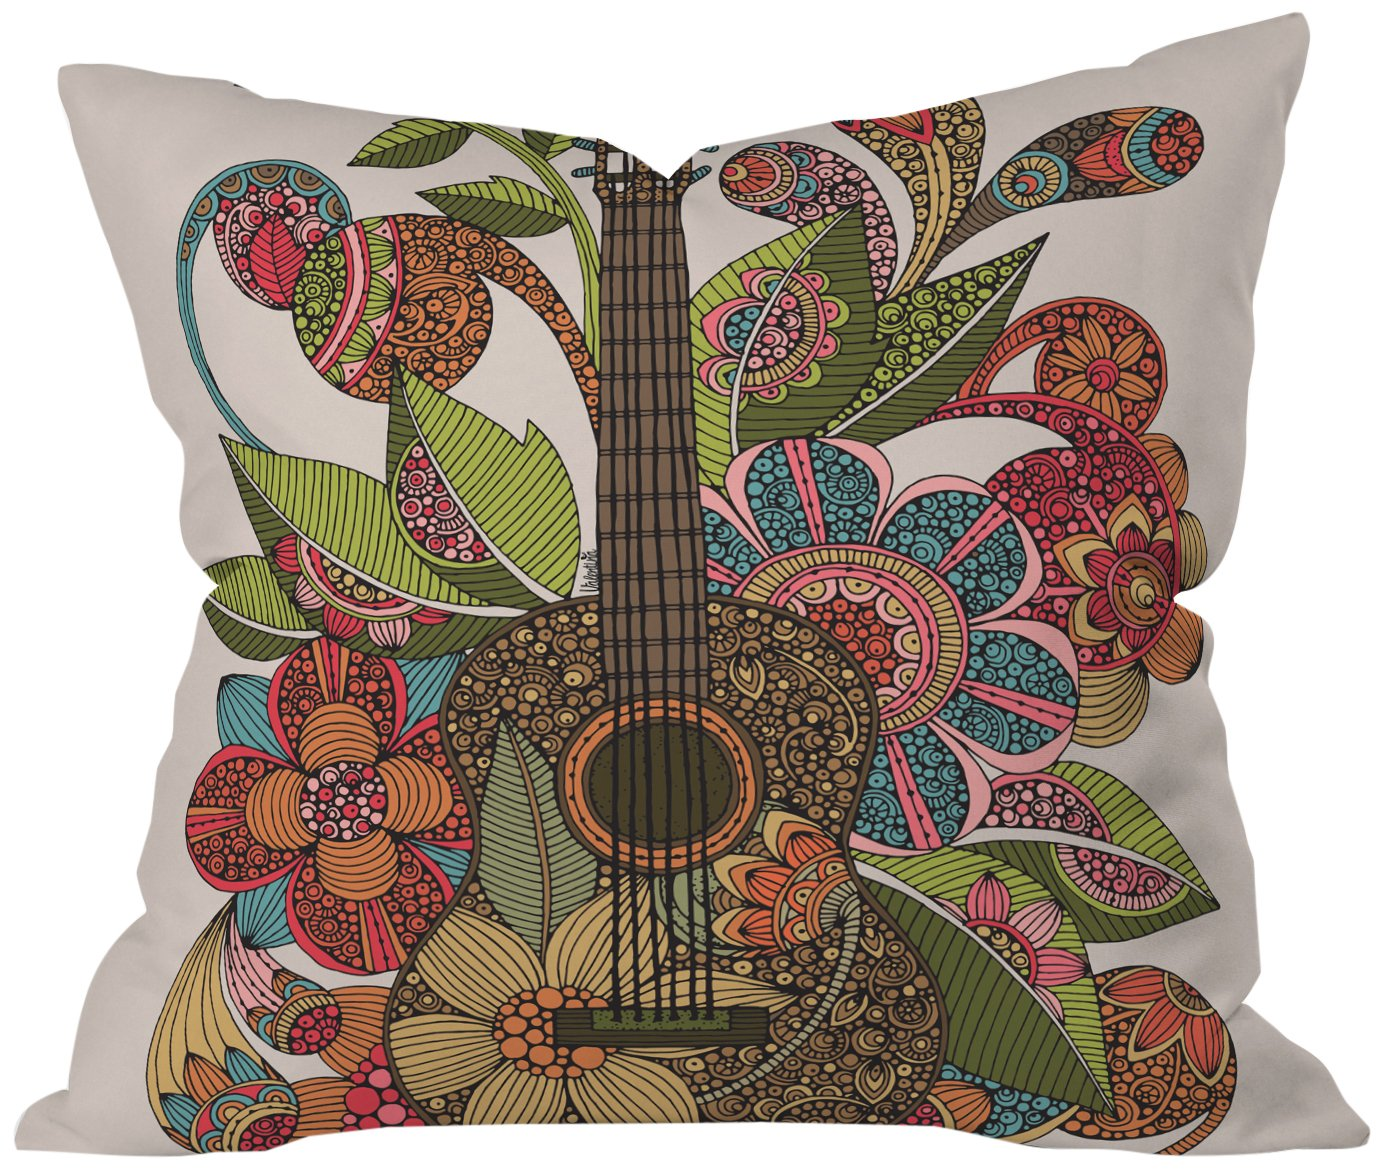 Deny Designs Valentina Ramos Ever Guitar Throw Pillow, 16 x 16